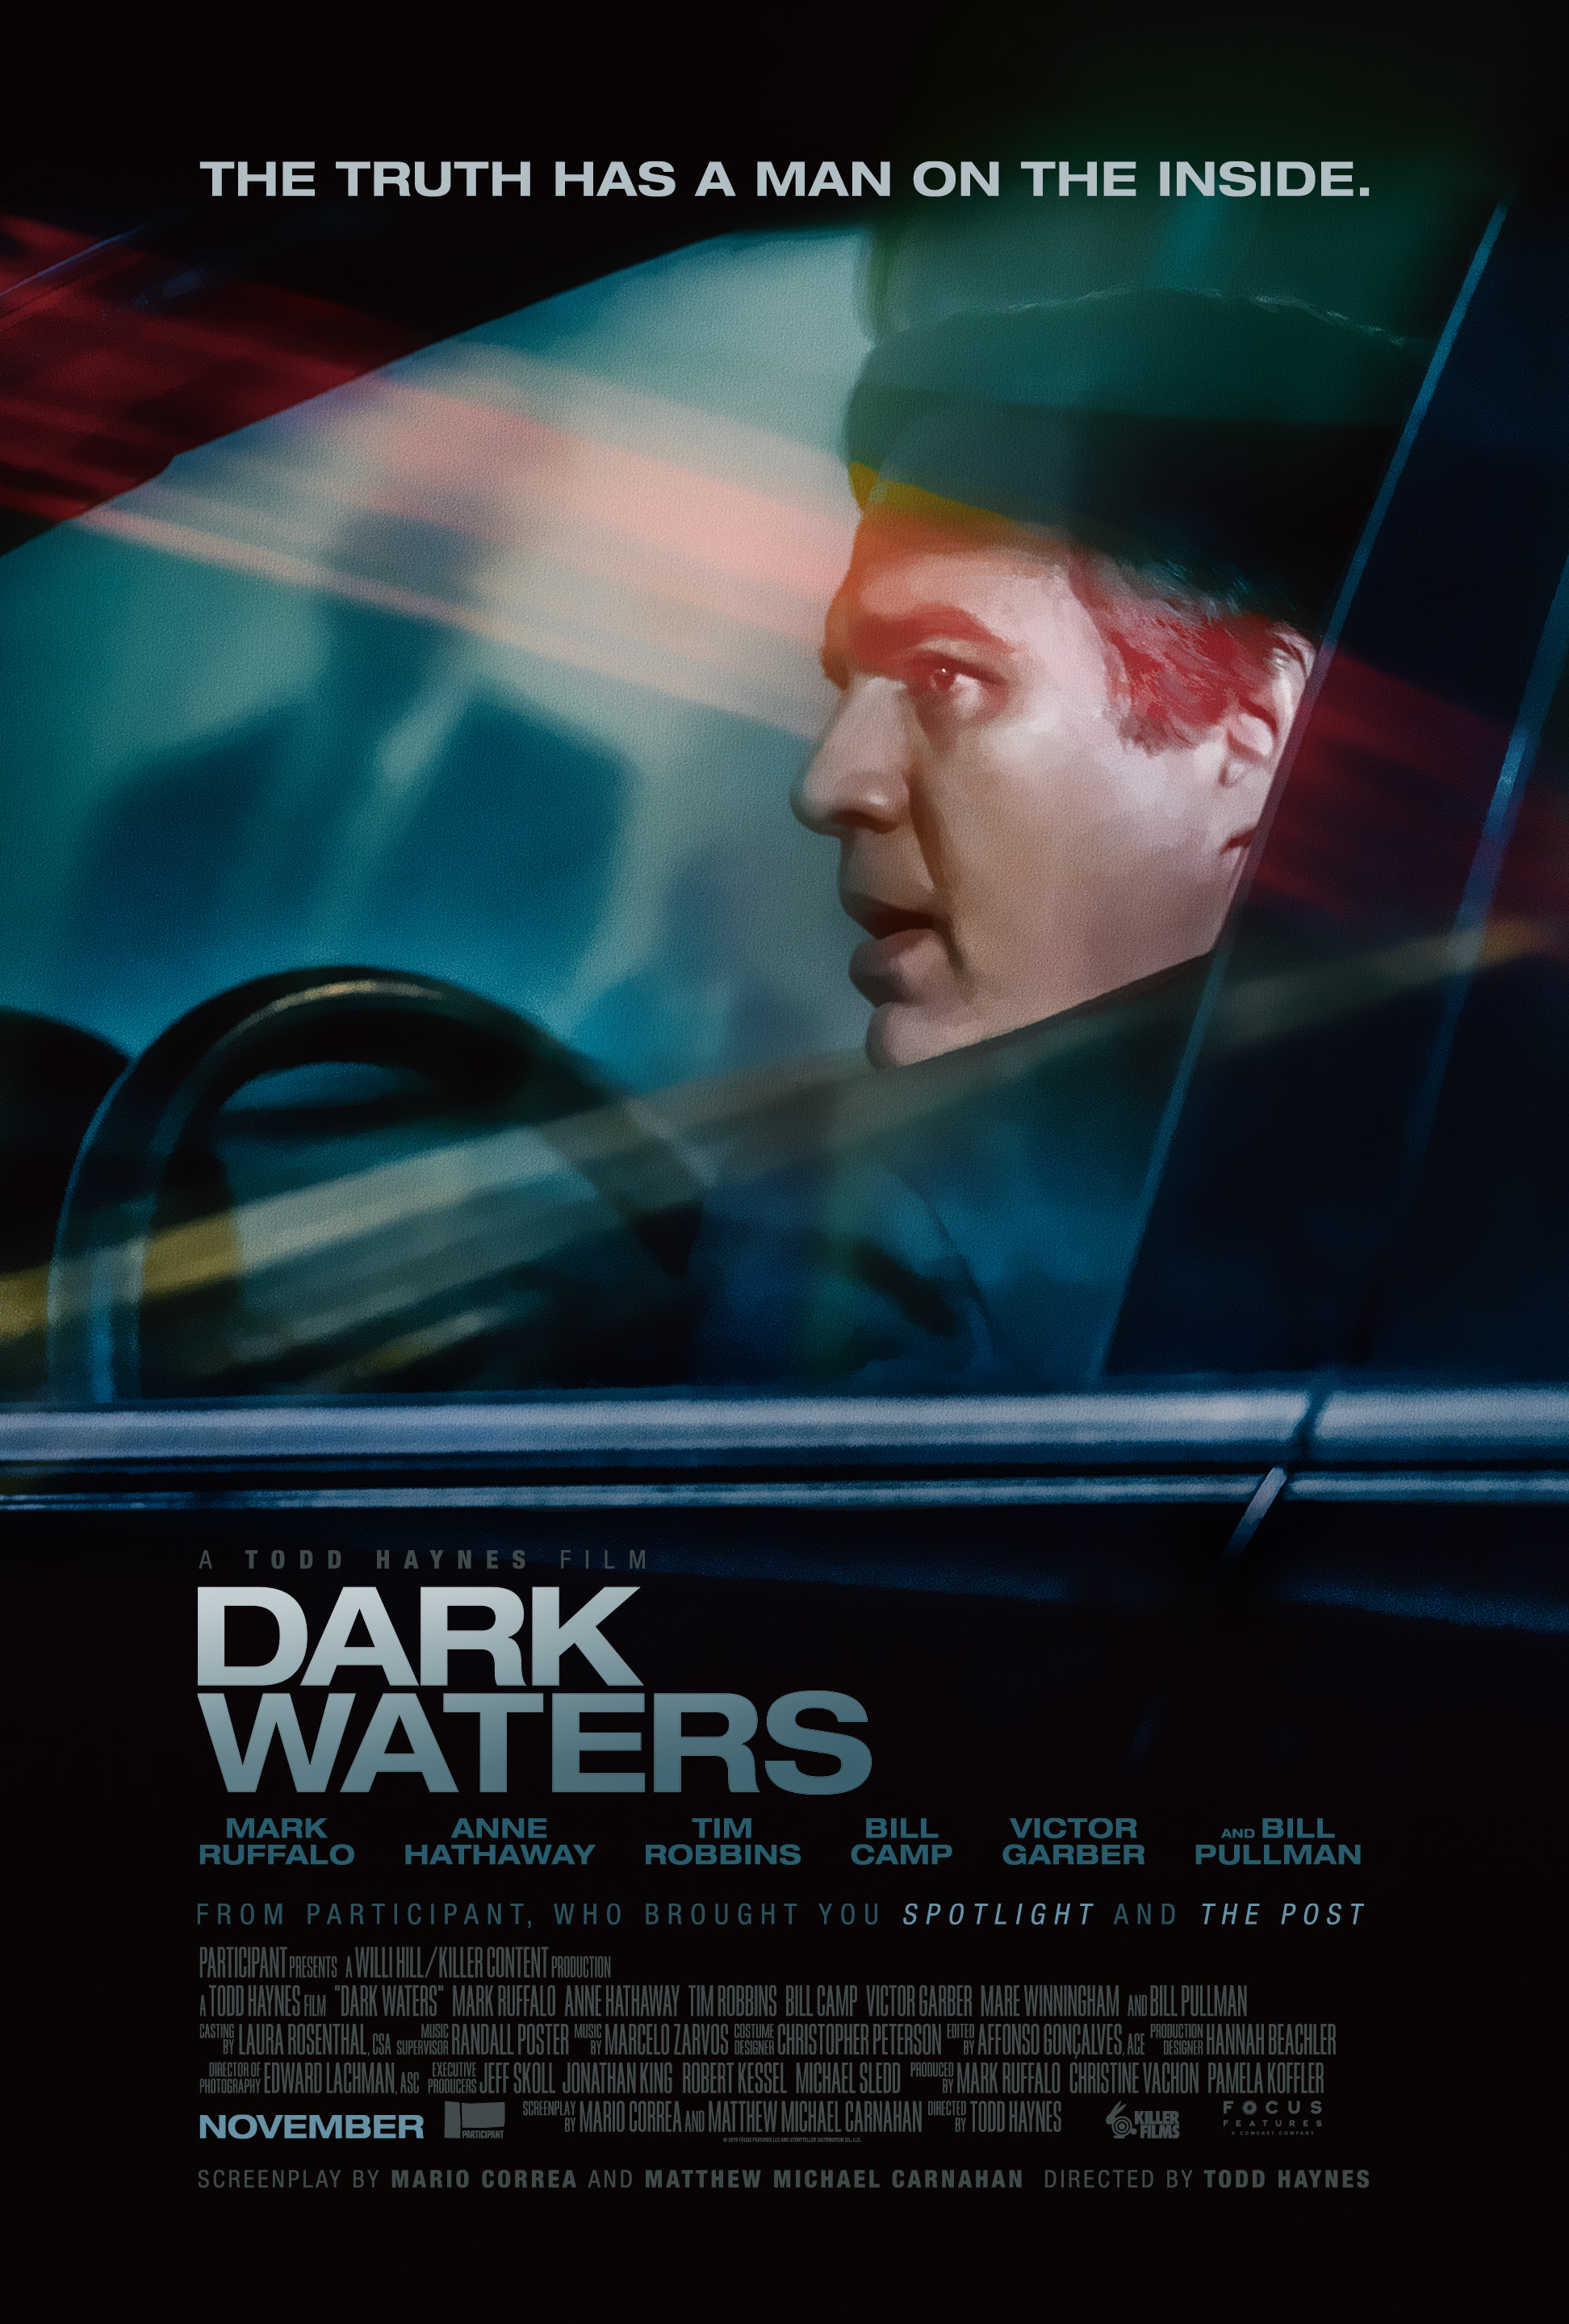 Image result for Dark waters movie poster